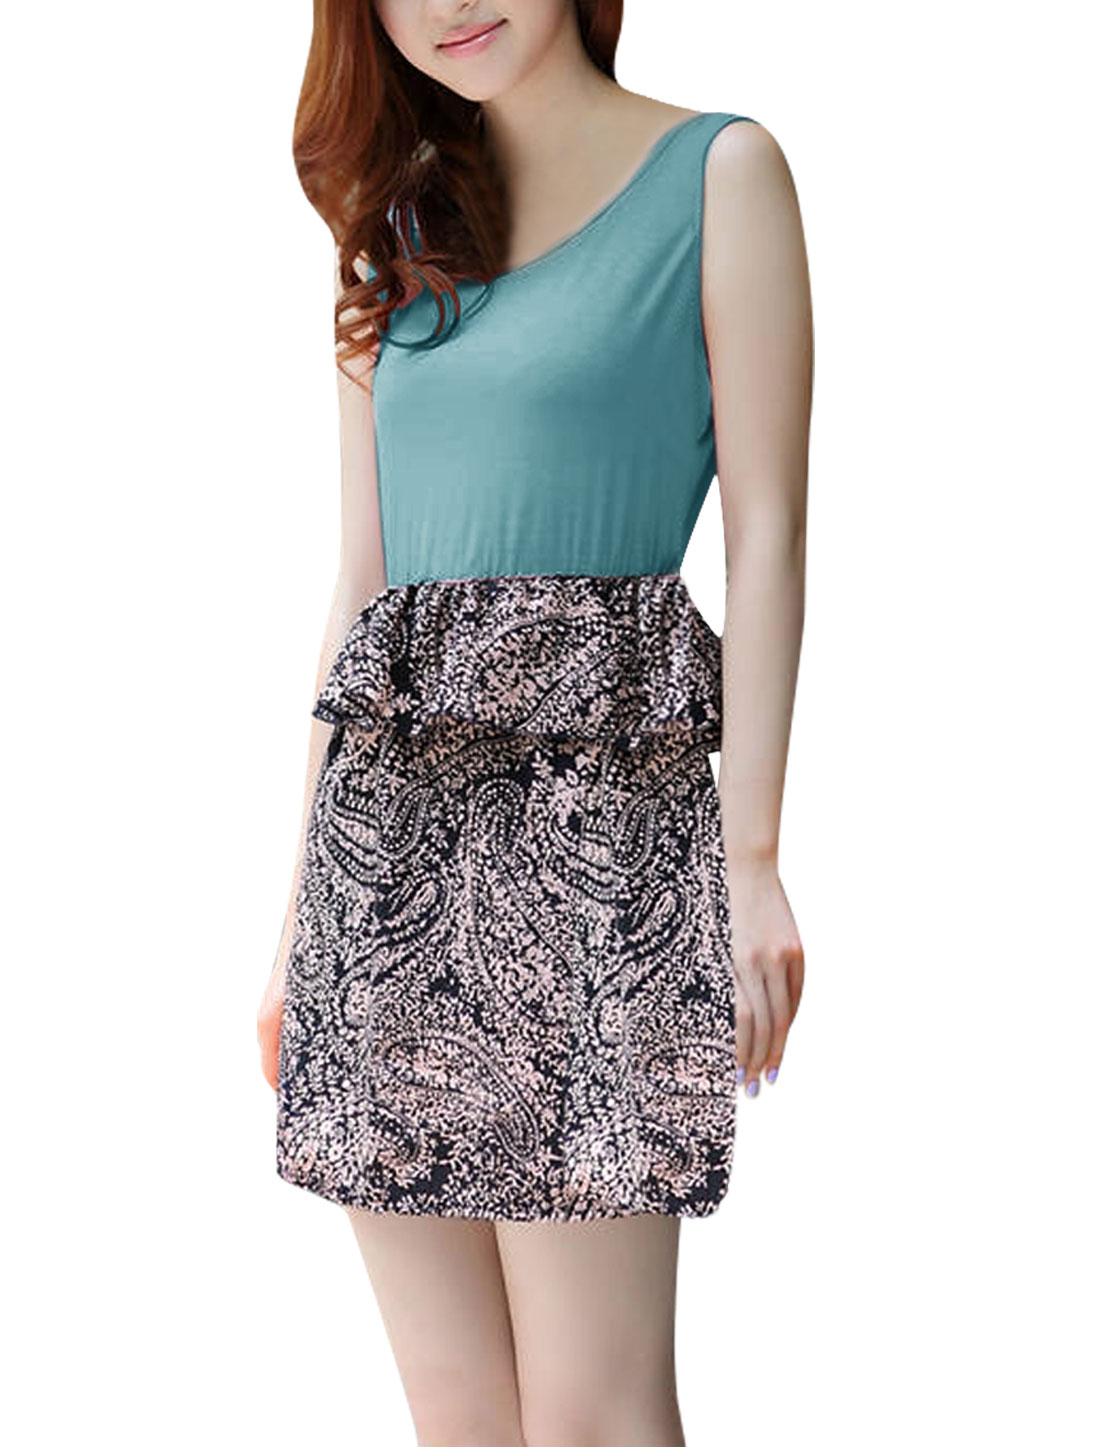 Lady Sleeveless Slim Fit Paisleys Prints Teal Blue Above Knee Dress XS